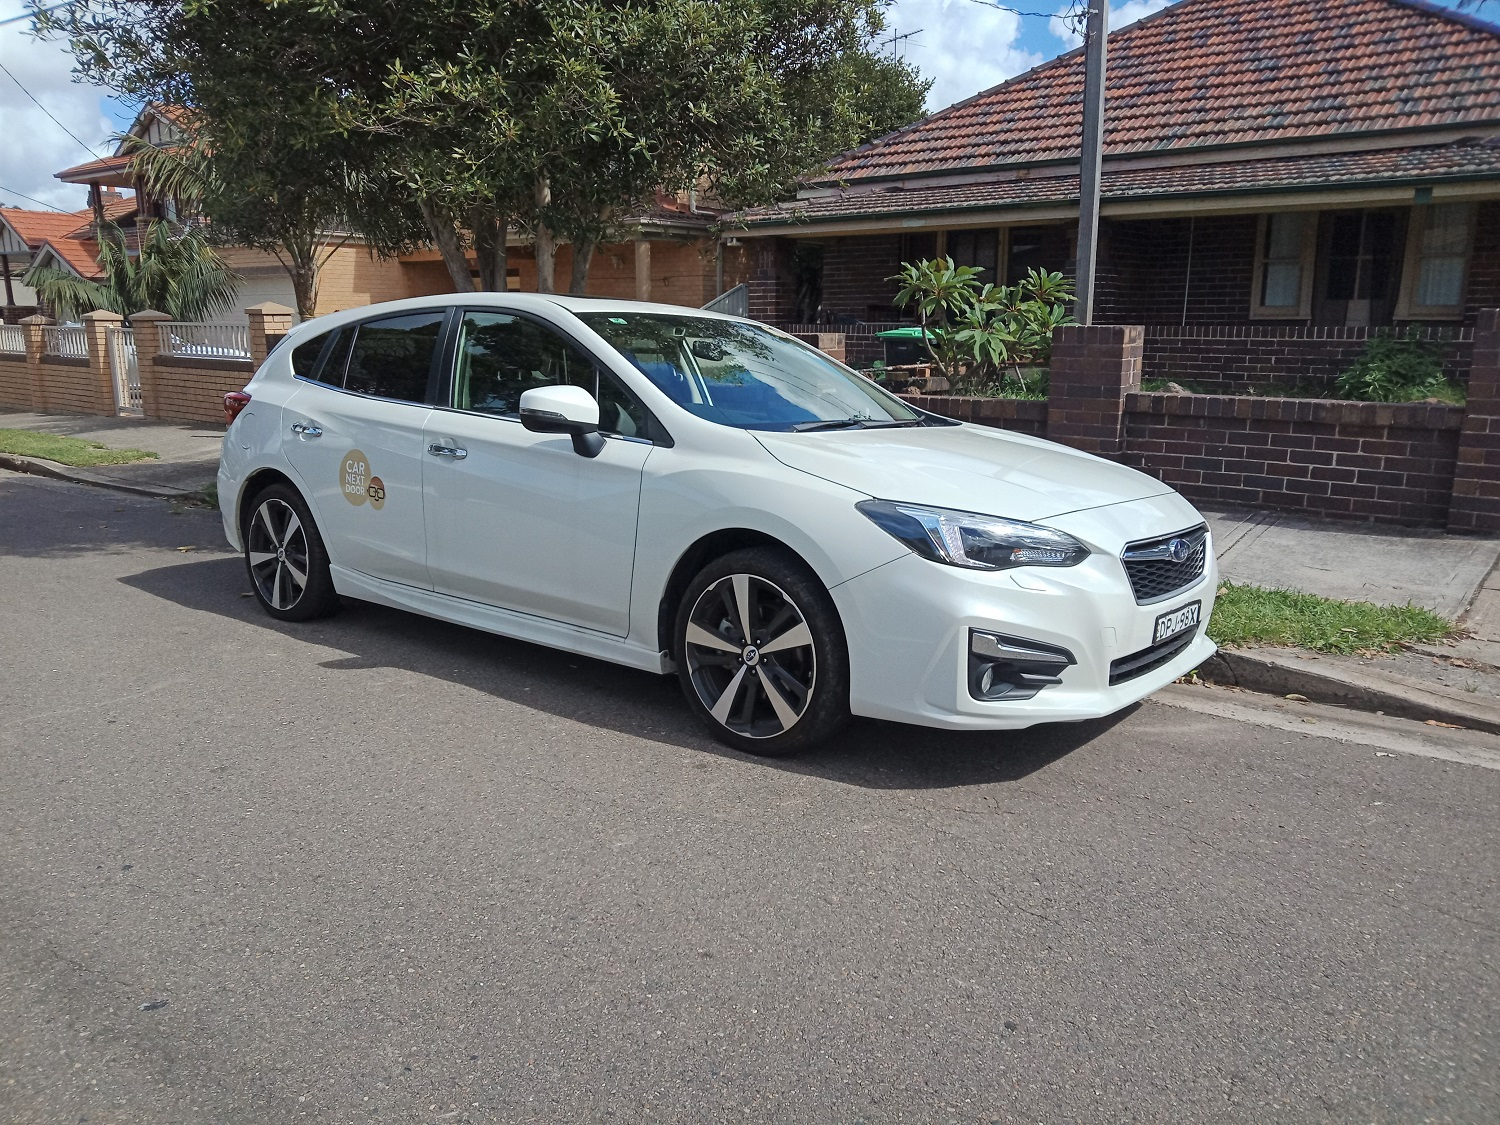 Picture of Michael Robert's 2017 Subaru Impreza